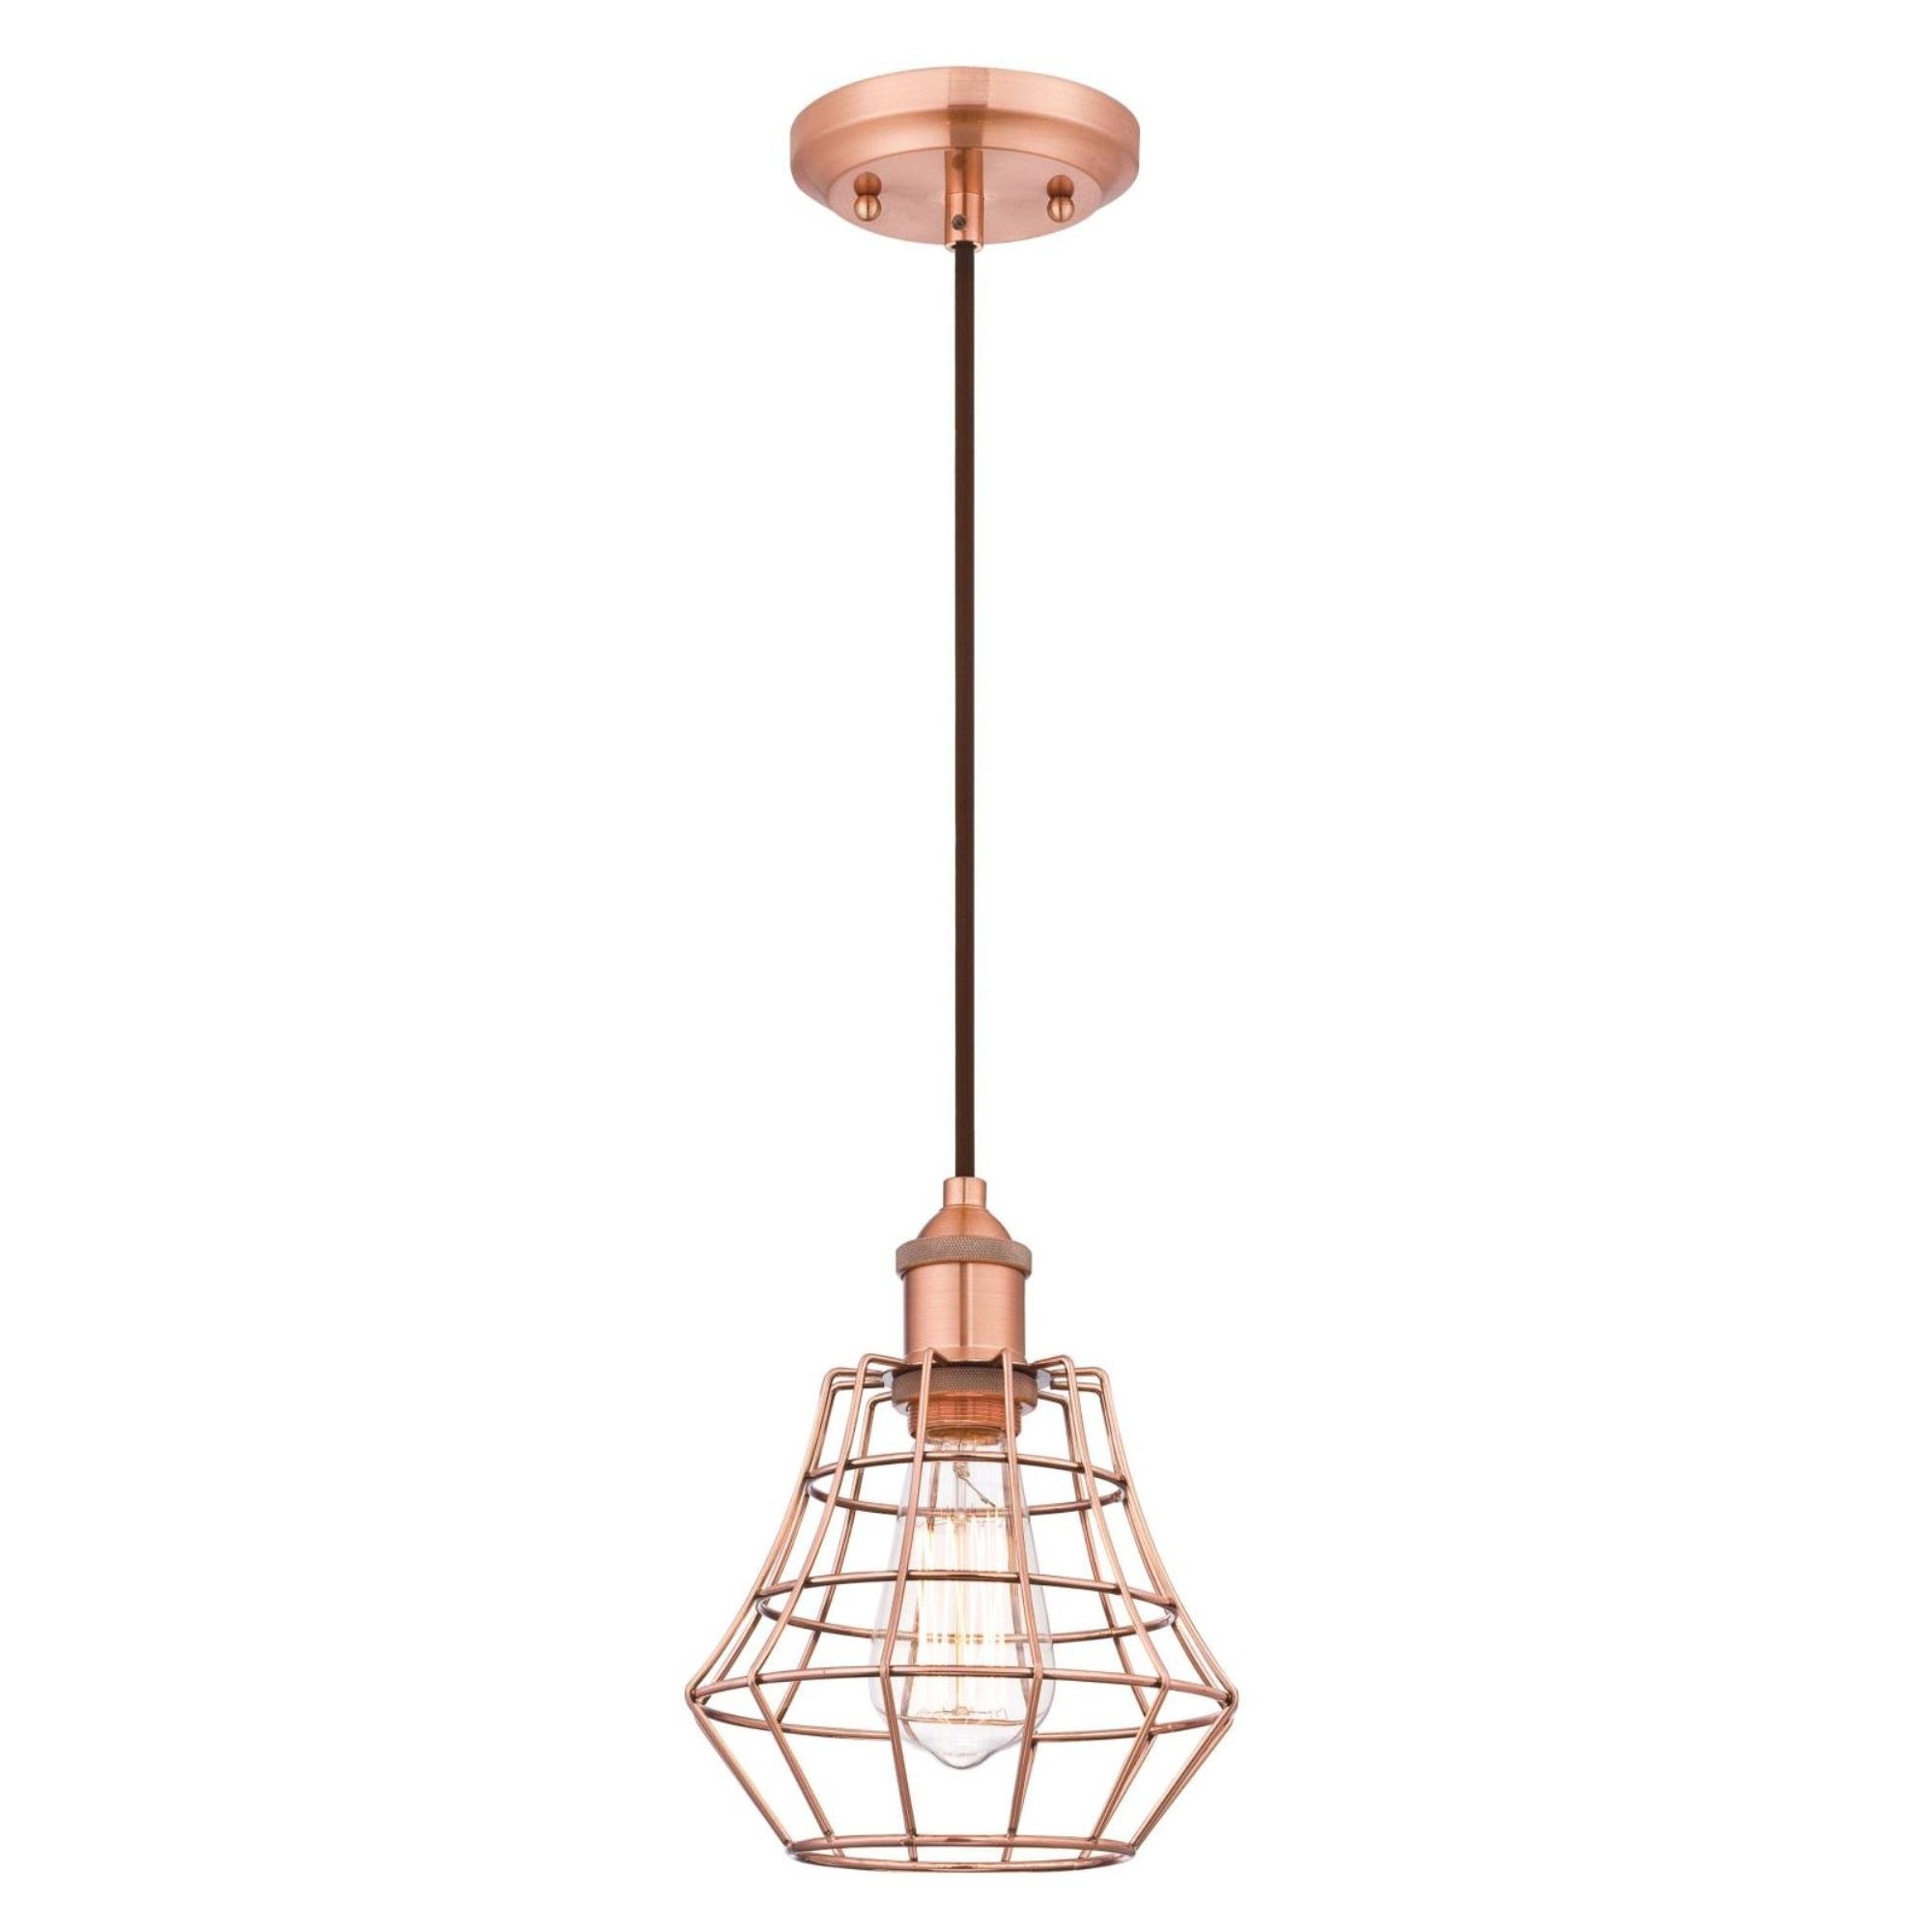 Schutt 5 Light Cluster Pendants Intended For Most Up To Date Williston Forge Pendant Lighting You'll Love In  (View 12 of 20)